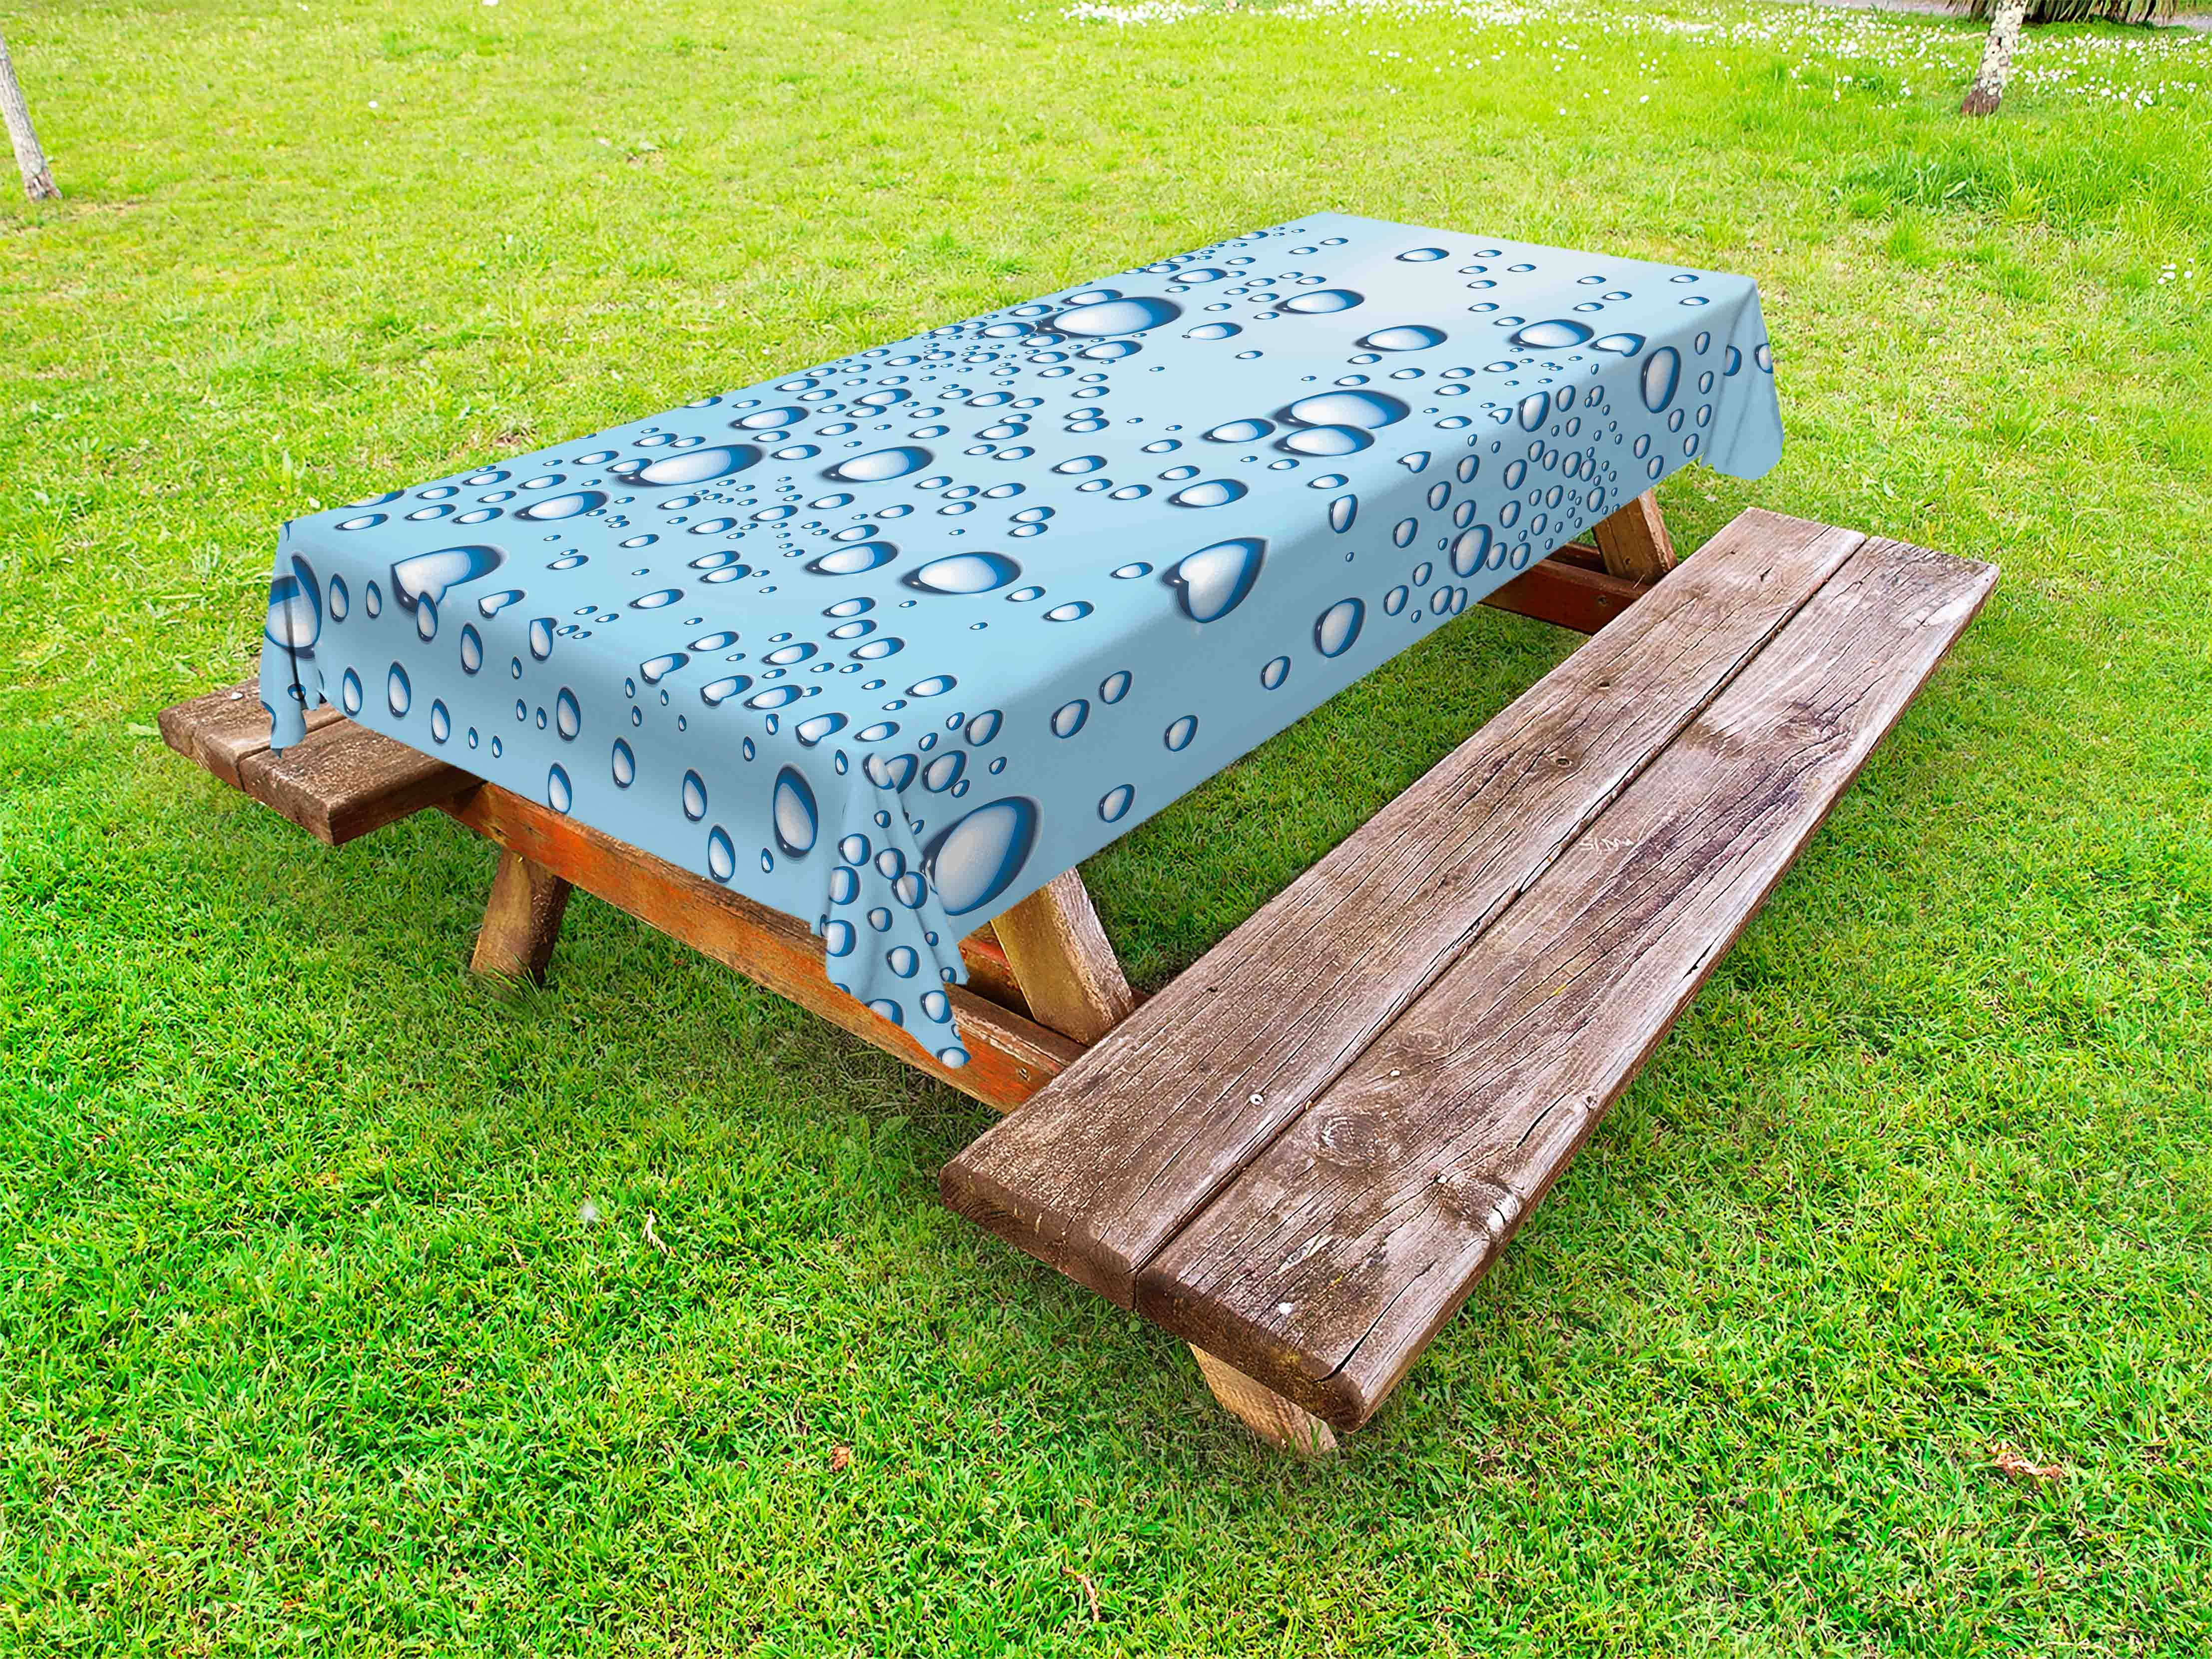 Modern Outdoor Tablecloth Water Marks Ice Cold Soda Drink